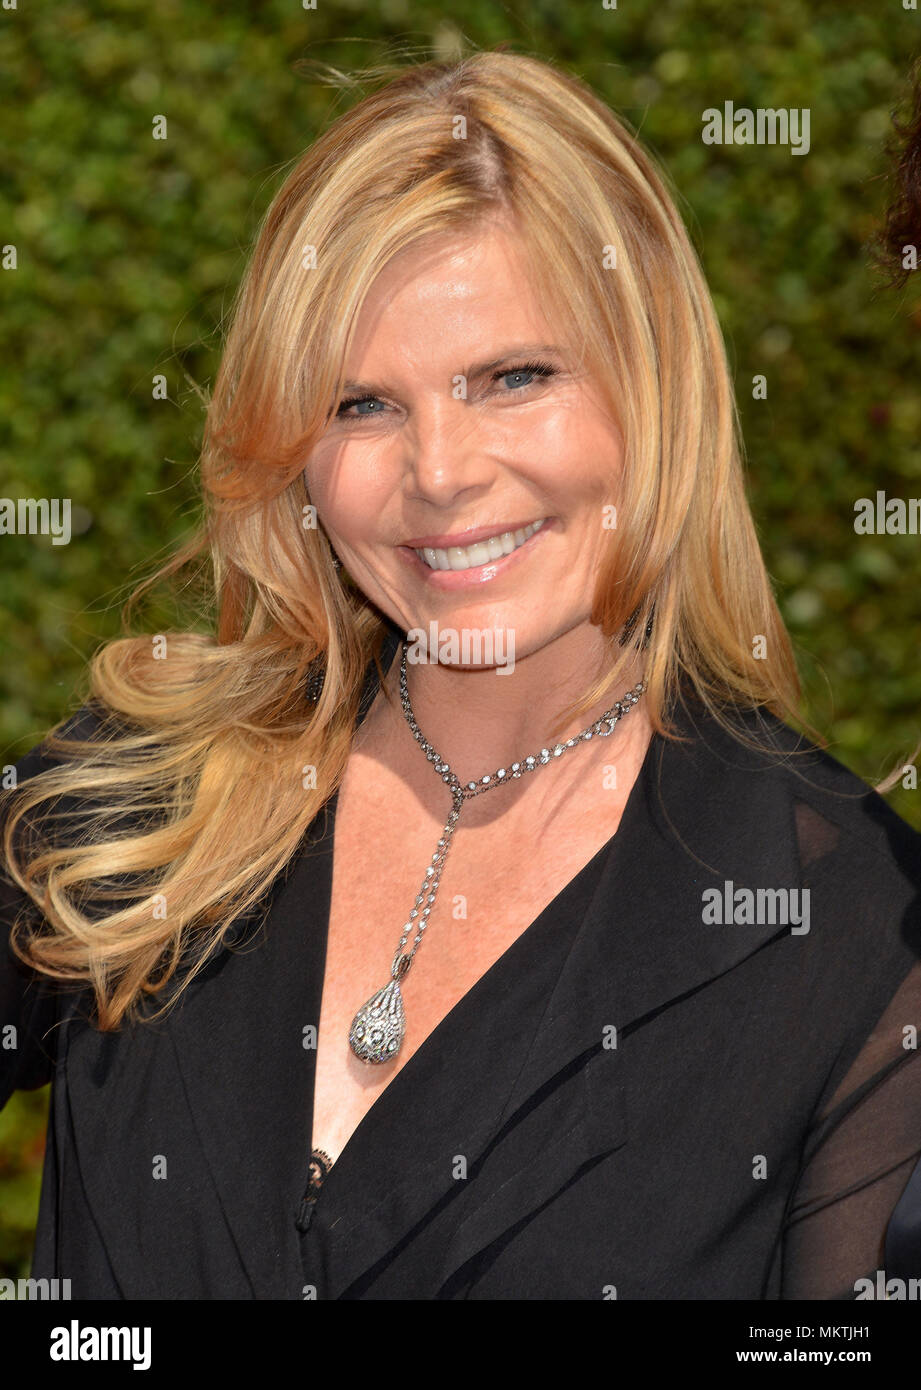 Mariel Hemingway  at the 2014 Creatine Arts Emmy Awards at the Nokia Theatre in Los Angeles.Mariel Hemingway  Red Carpet Event, Vertical, USA, Film Industry, Celebrities,  Photography, Bestof, Arts Culture and Entertainment, Topix Celebrities fashion /  Vertical, Best of, Event in Hollywood Life - California,  Red Carpet and backstage, USA, Film Industry, Celebrities,  movie celebrities, TV celebrities, Music celebrities, Photography, Bestof, Arts Culture and Entertainment,  Topix, headshot, vertical, one person,, from the year , 2014, inquiry tsuni@Gamma-USA.com Stock Photo